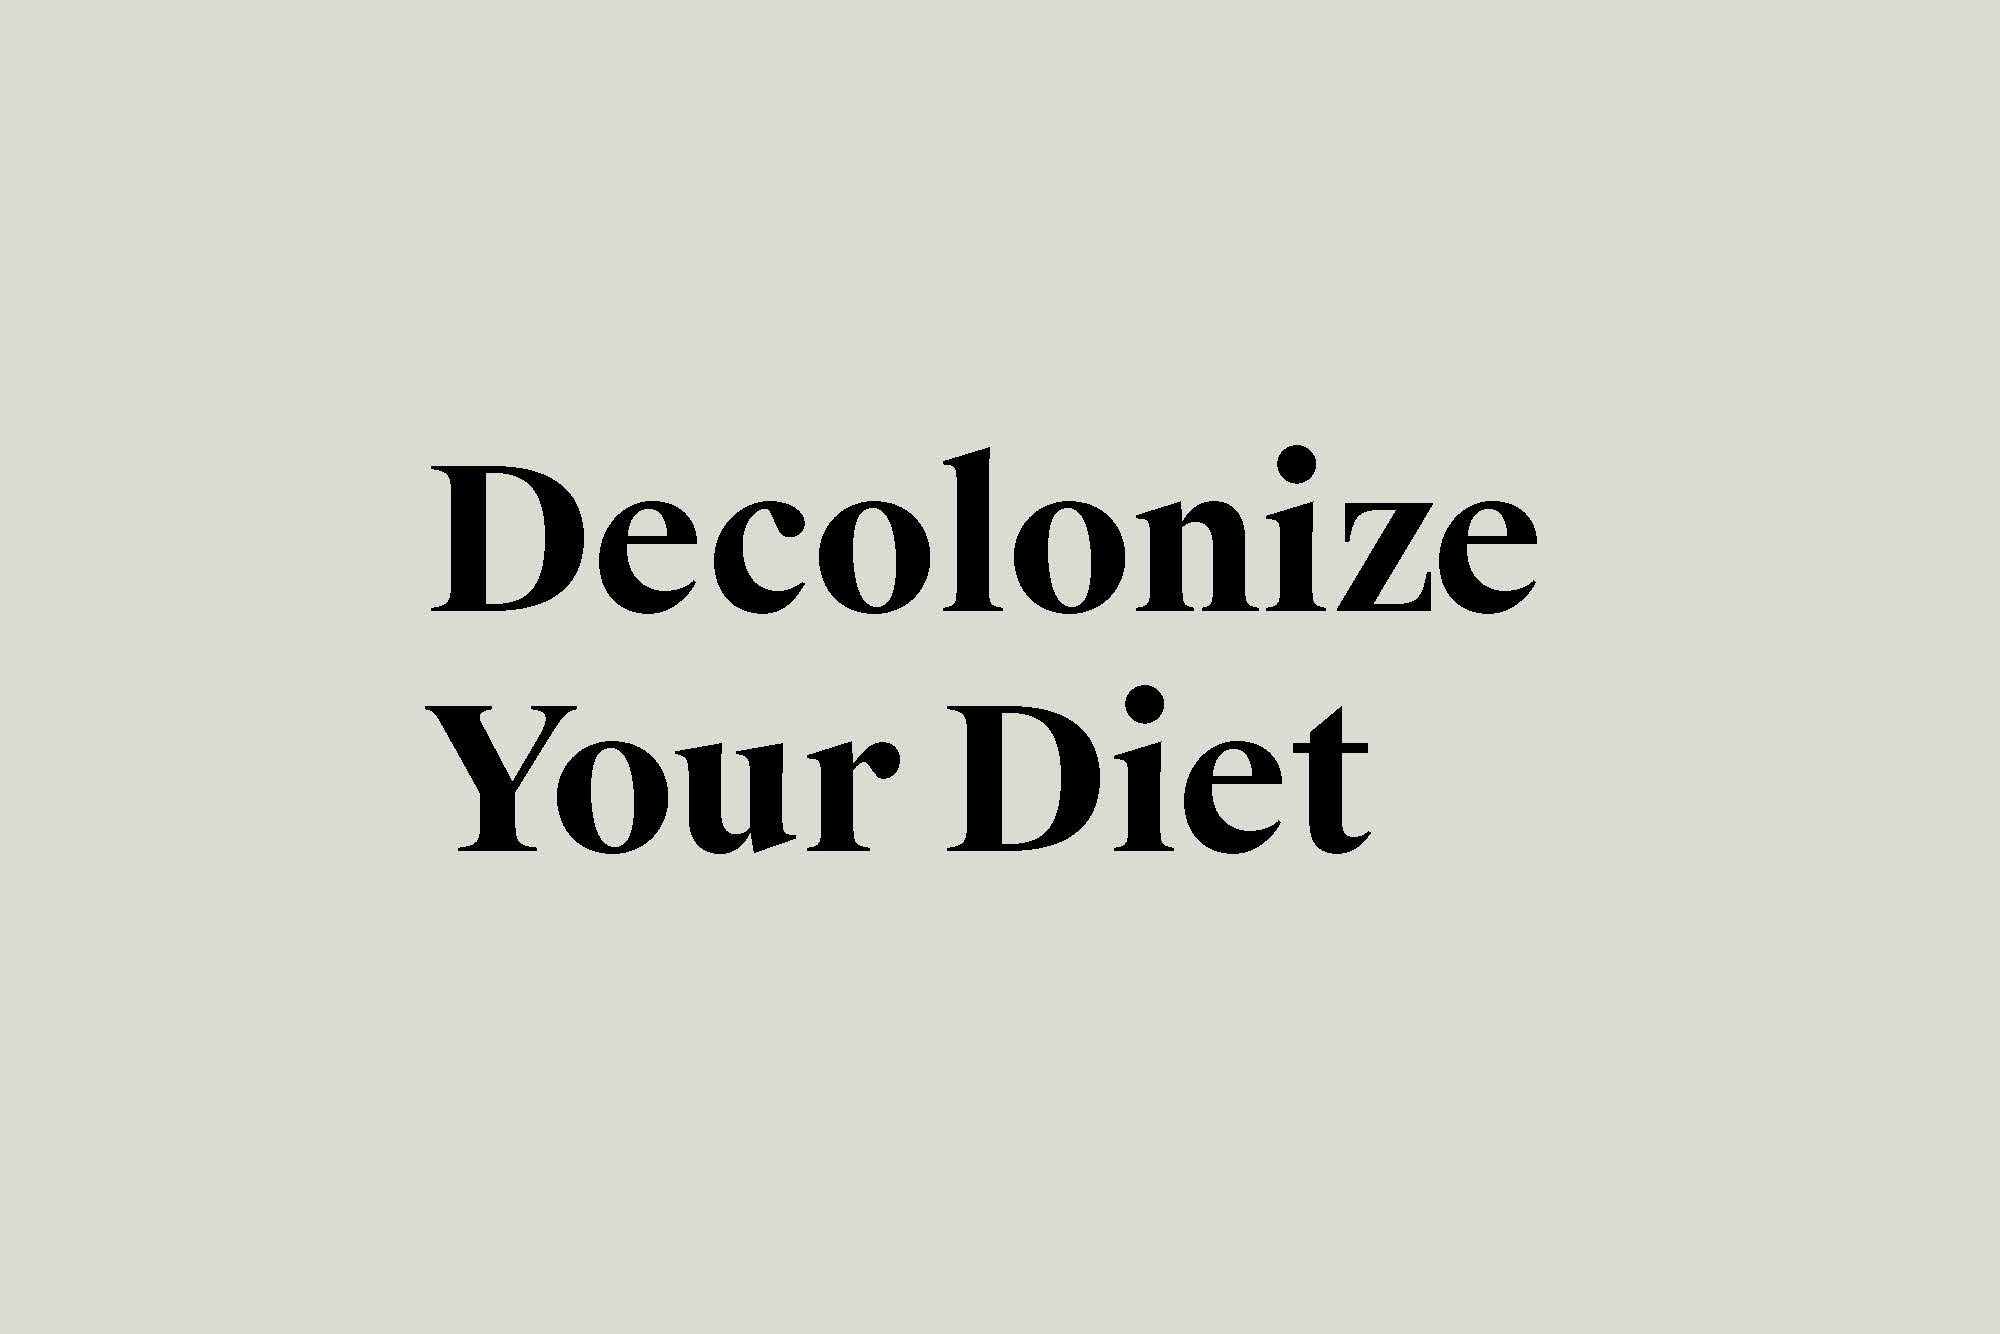 In    Decolonize Your Diet: A Manifesto   , Dr. Catriona Rueda Esquibel and Dr. Luz Calvo build an argument for food sovereignty. They are specifically focus their argument on the Mexican community and that making a pot of beans as a revolutionary act. We are inspired by their manifesto and believe that  fermentation is an essential part of food sovereignty. Fermentation allows us to preserve our harvest and have local nutrients during the cold seasons and fermented foods can restore the microbiome wrecked by the industrial food system.